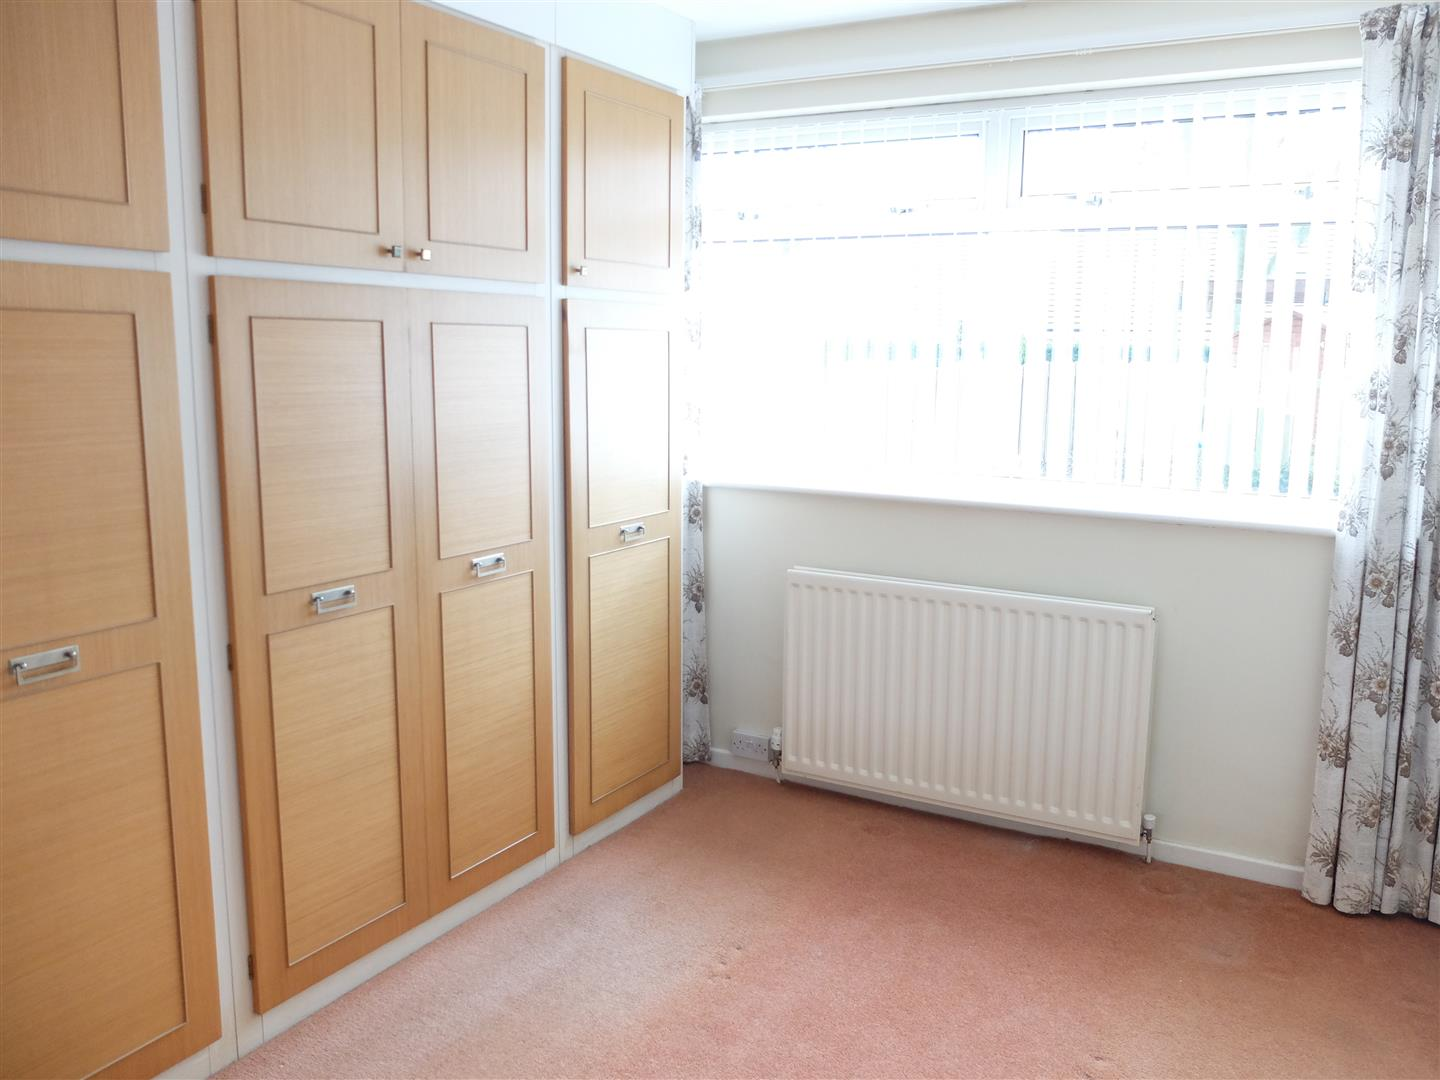 2 Bedrooms Bungalow - Semi Detached For Sale 2 Farbrow Road Carlisle 150,000